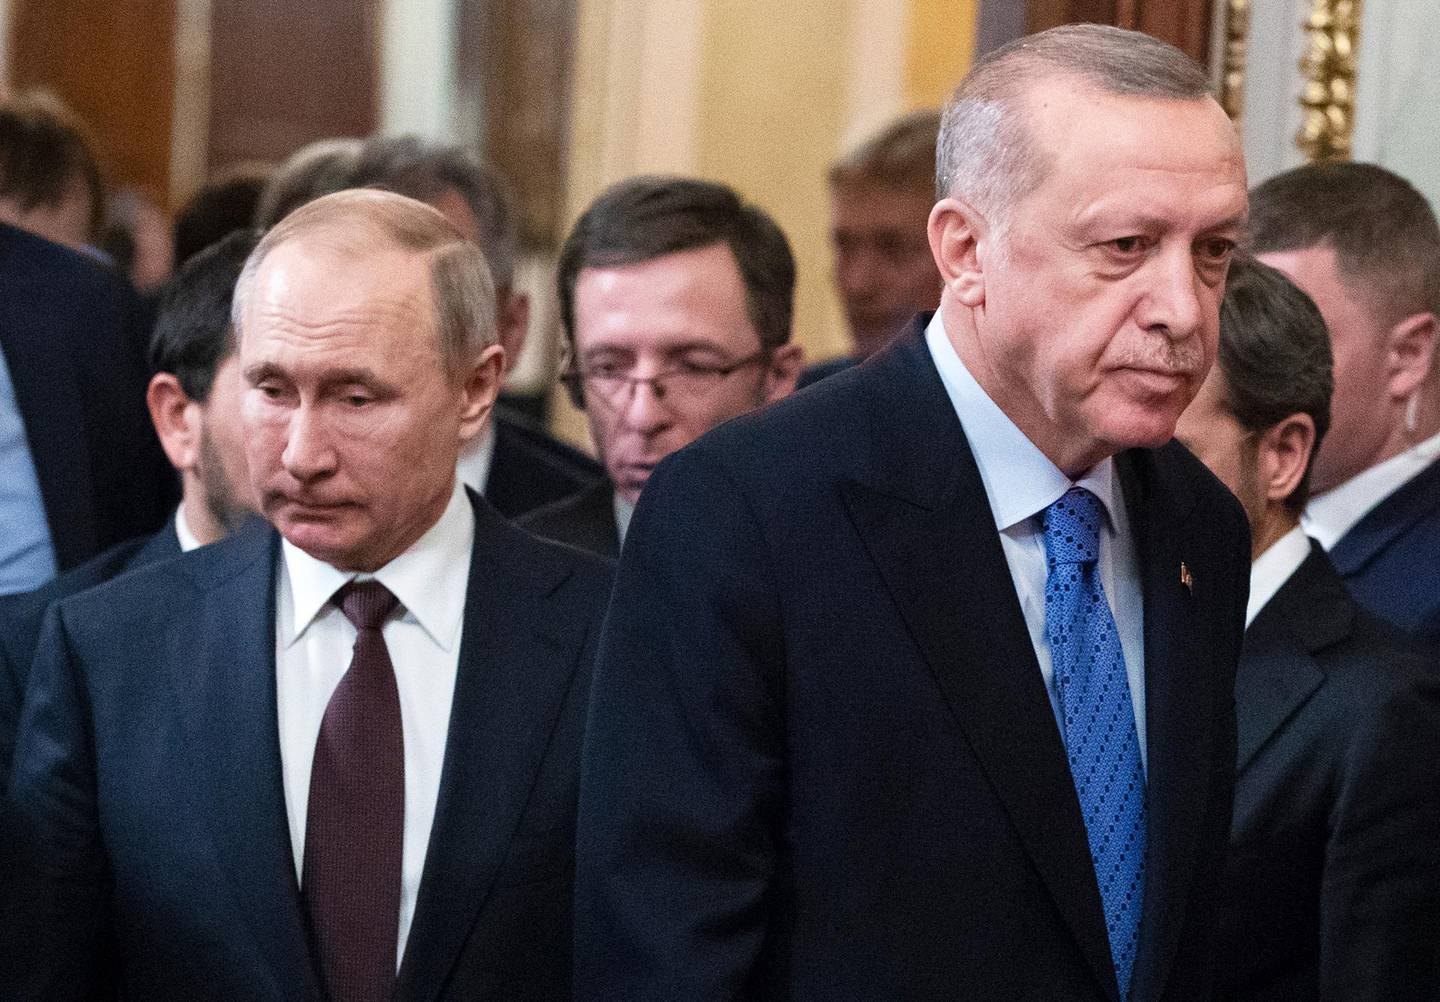 Russian President Vladimir Putin, left, and Turkish President Recep Tayyip Erdogan arrive for a news conference after their talks in the Kremlin, in Moscow, Russia, Thursday, March 5, 2020.  Russian President Vladimir Putin and his Turkish counterpart, Recep Tayyip Erdogan, say they have reached agreements that could end fighting in northwestern Syria. (AP Photo/Pavel Golovkin, Pool)